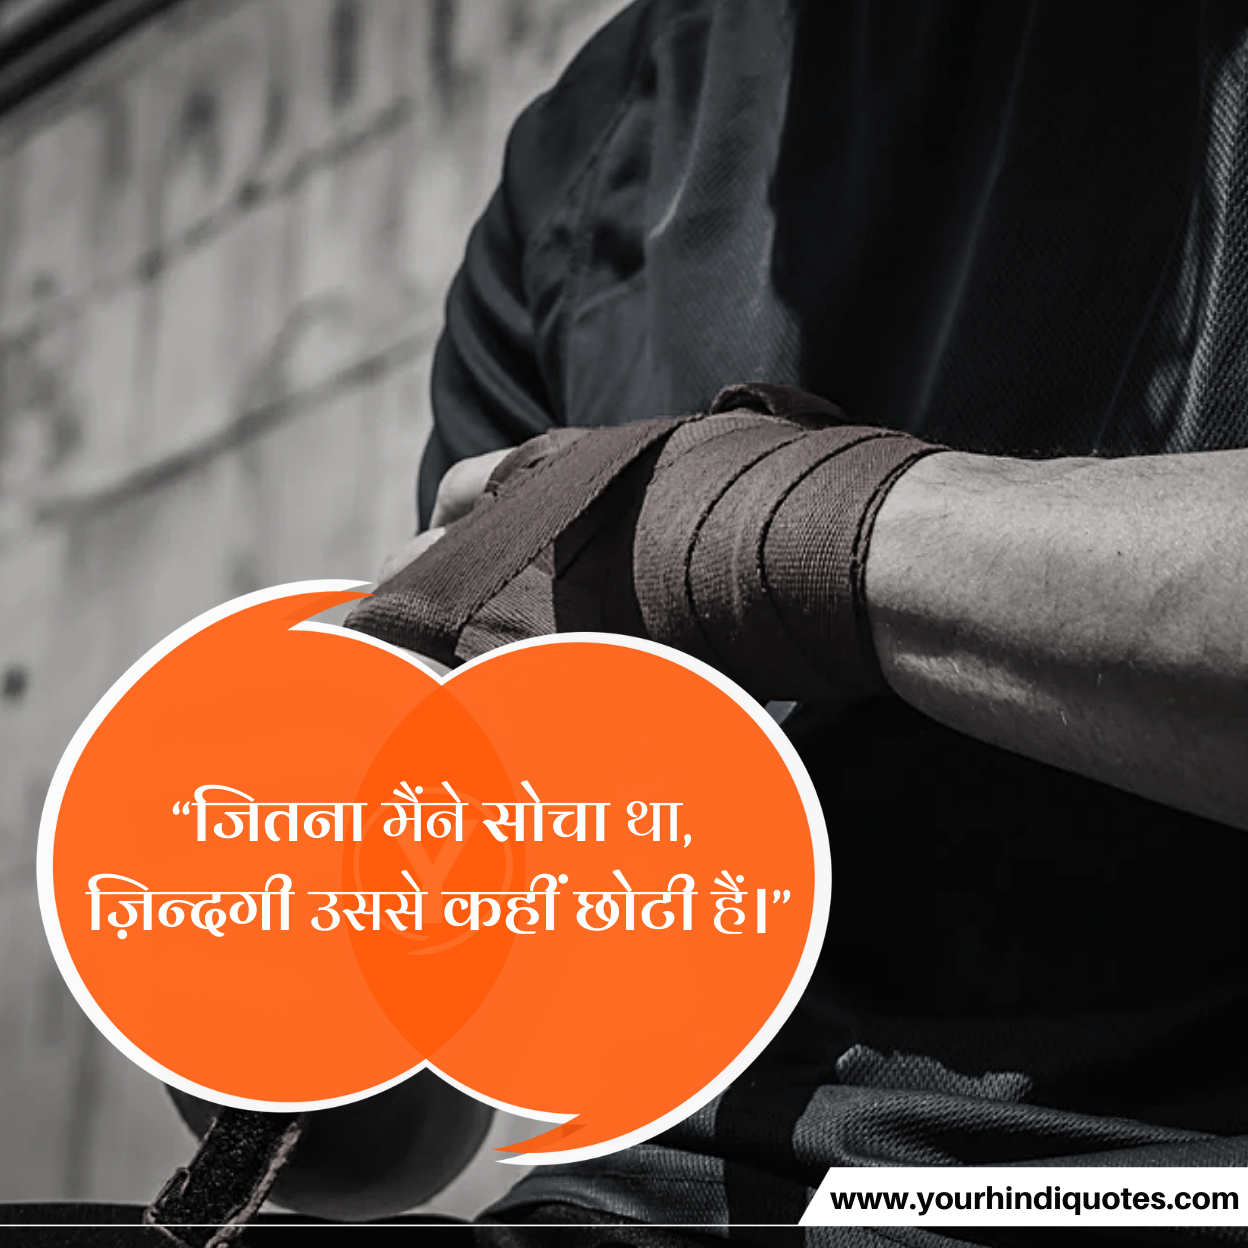 Best Hindi Life Quotes Image